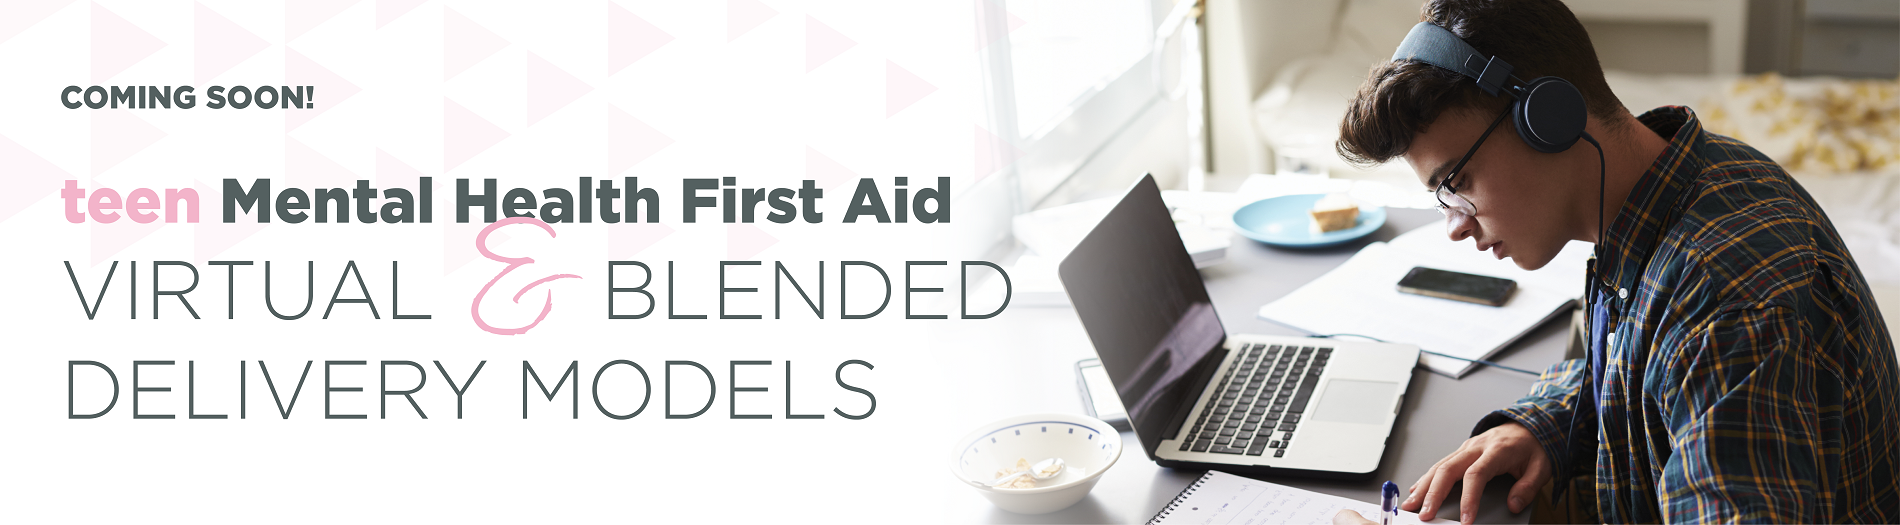 teen Mental Health First Aid Virtual & Blended Models Coming Soon!